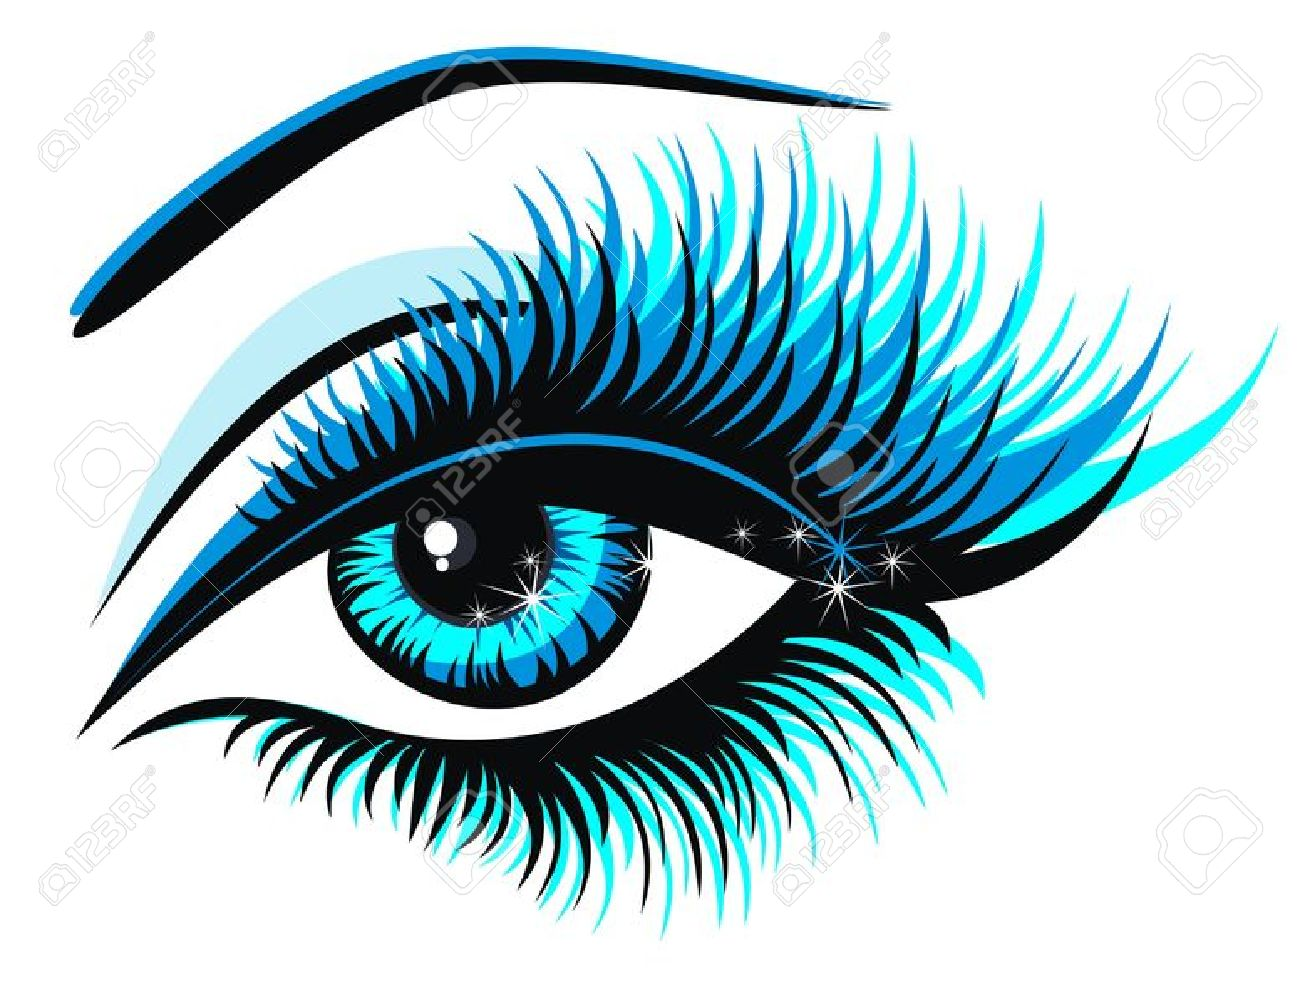 5,465 Eyes Lashes Stock Vector Illustration And Royalty Free Eyes.